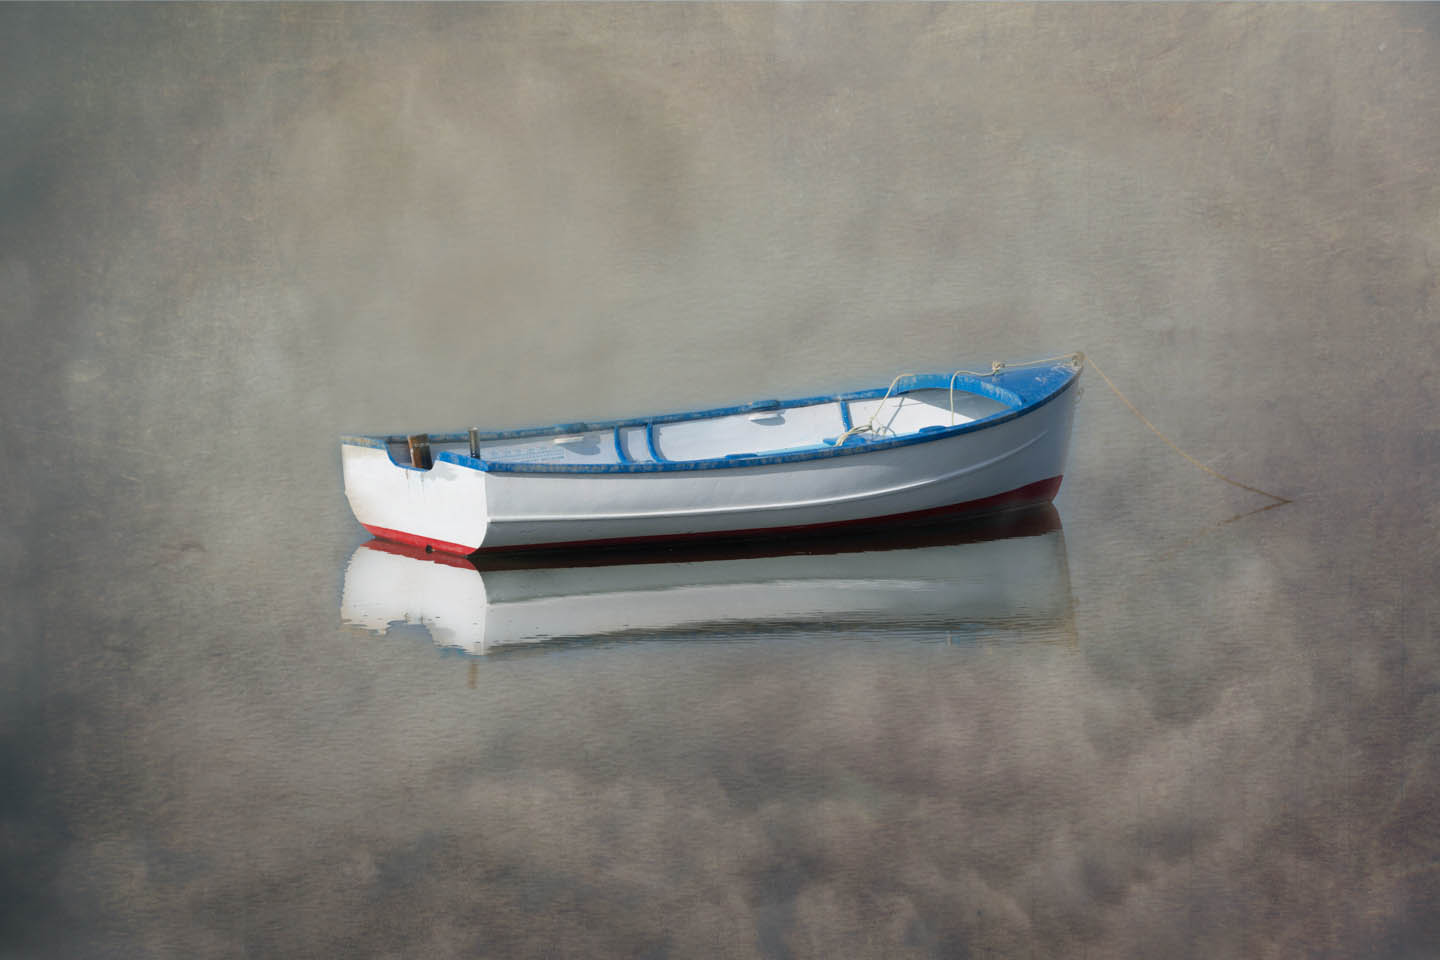 dingy floating on a still sea with the sky and clouds reflecting in the water